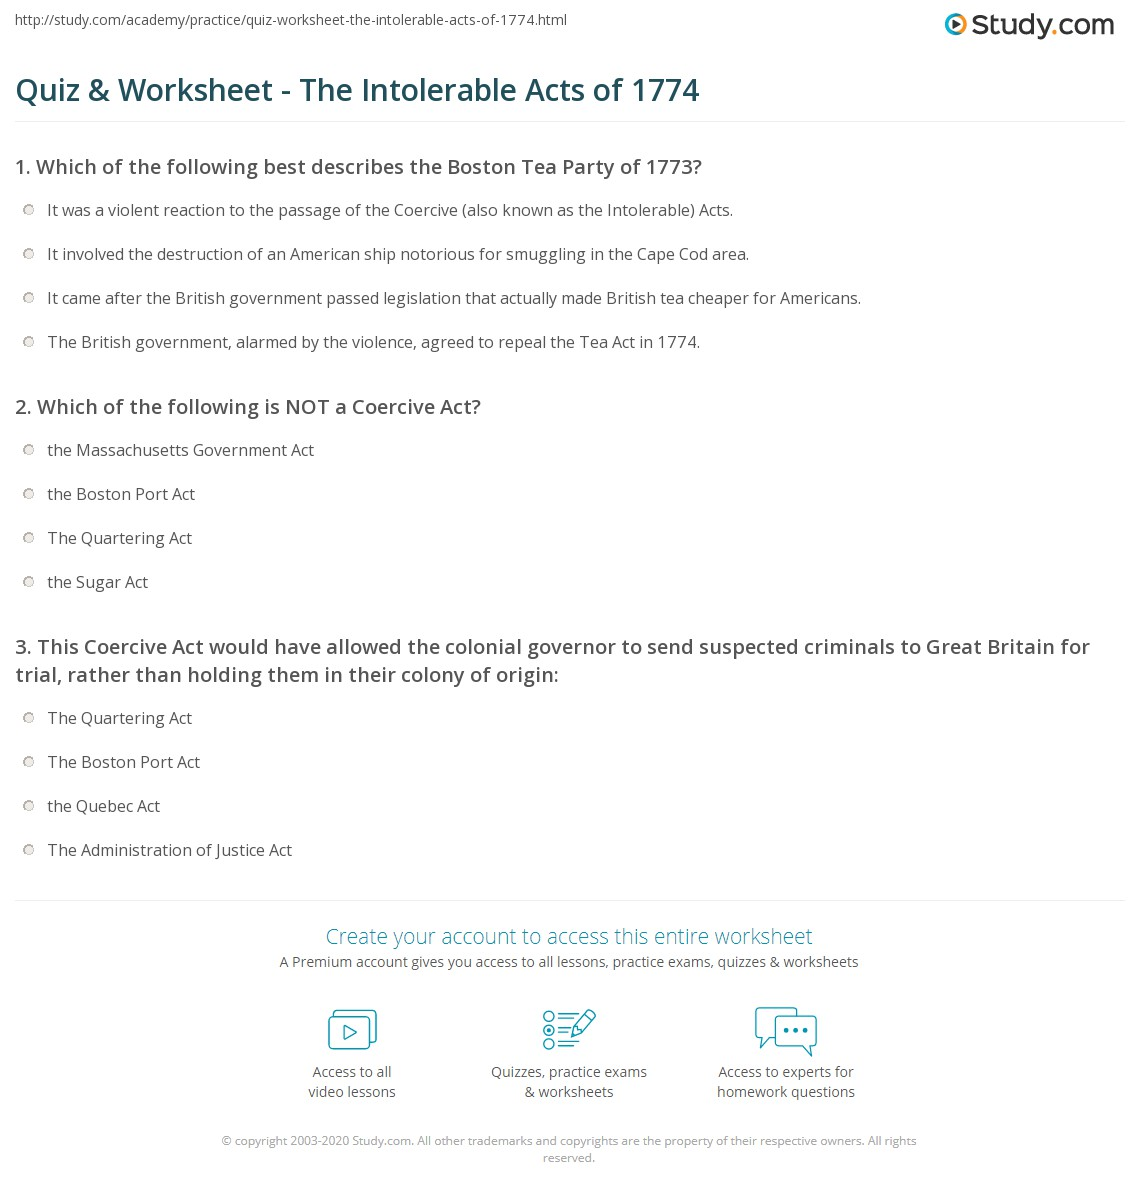 quiz worksheet the intolerable acts of com print the intolerable acts of 1774 definition summary significance worksheet